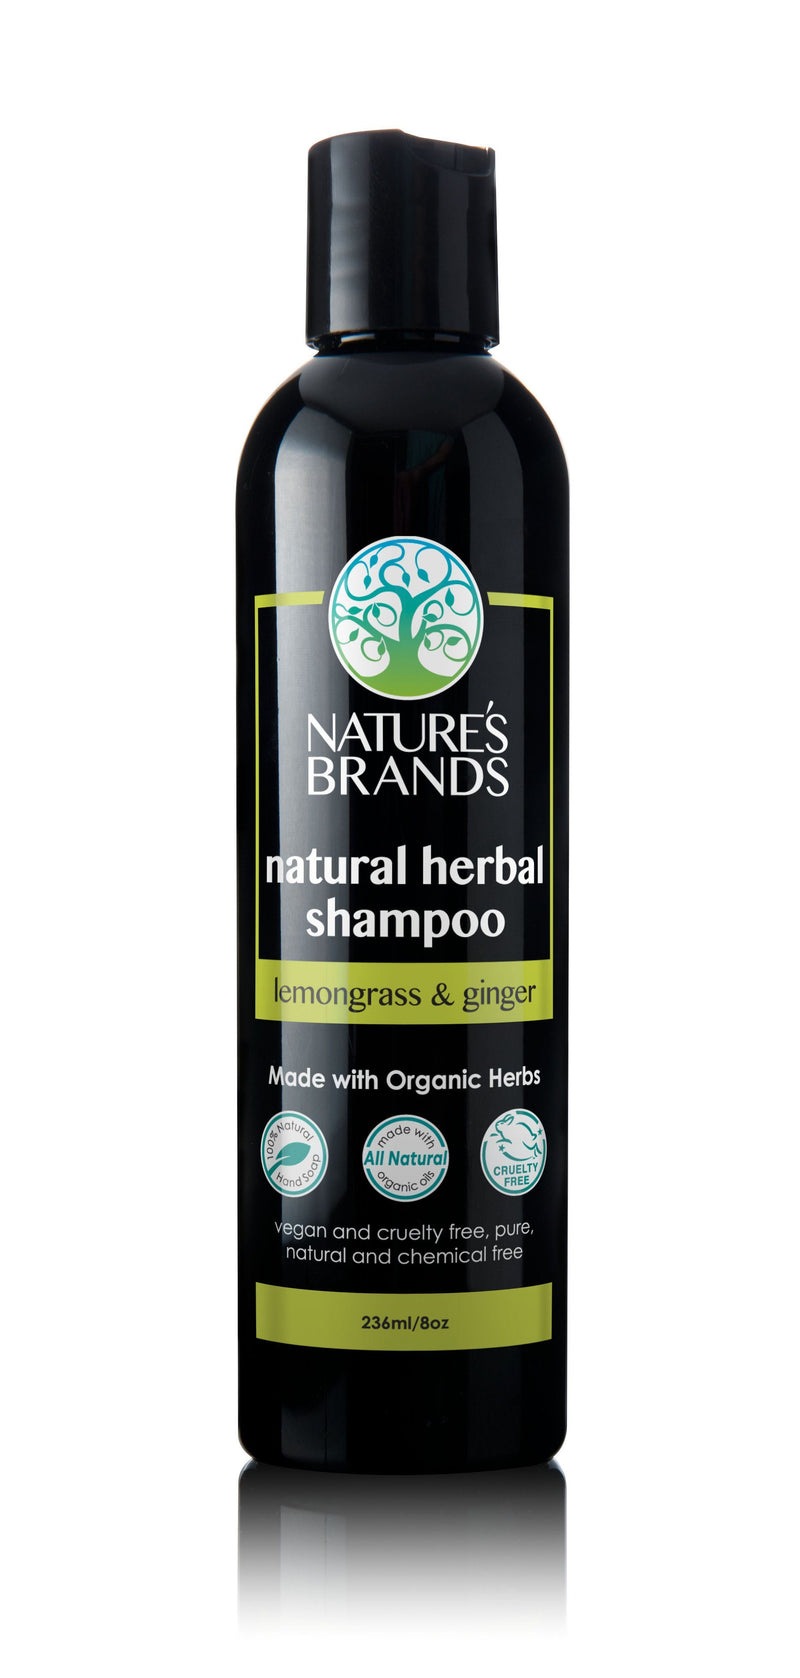 Herbal Choice Mari Natural Shampoo, Lemongrass & Ginger; Made with Organic - Herbal Choice Mari Natural Shampoo, Lemongrass & Ginger; Made with Organic - 8floz